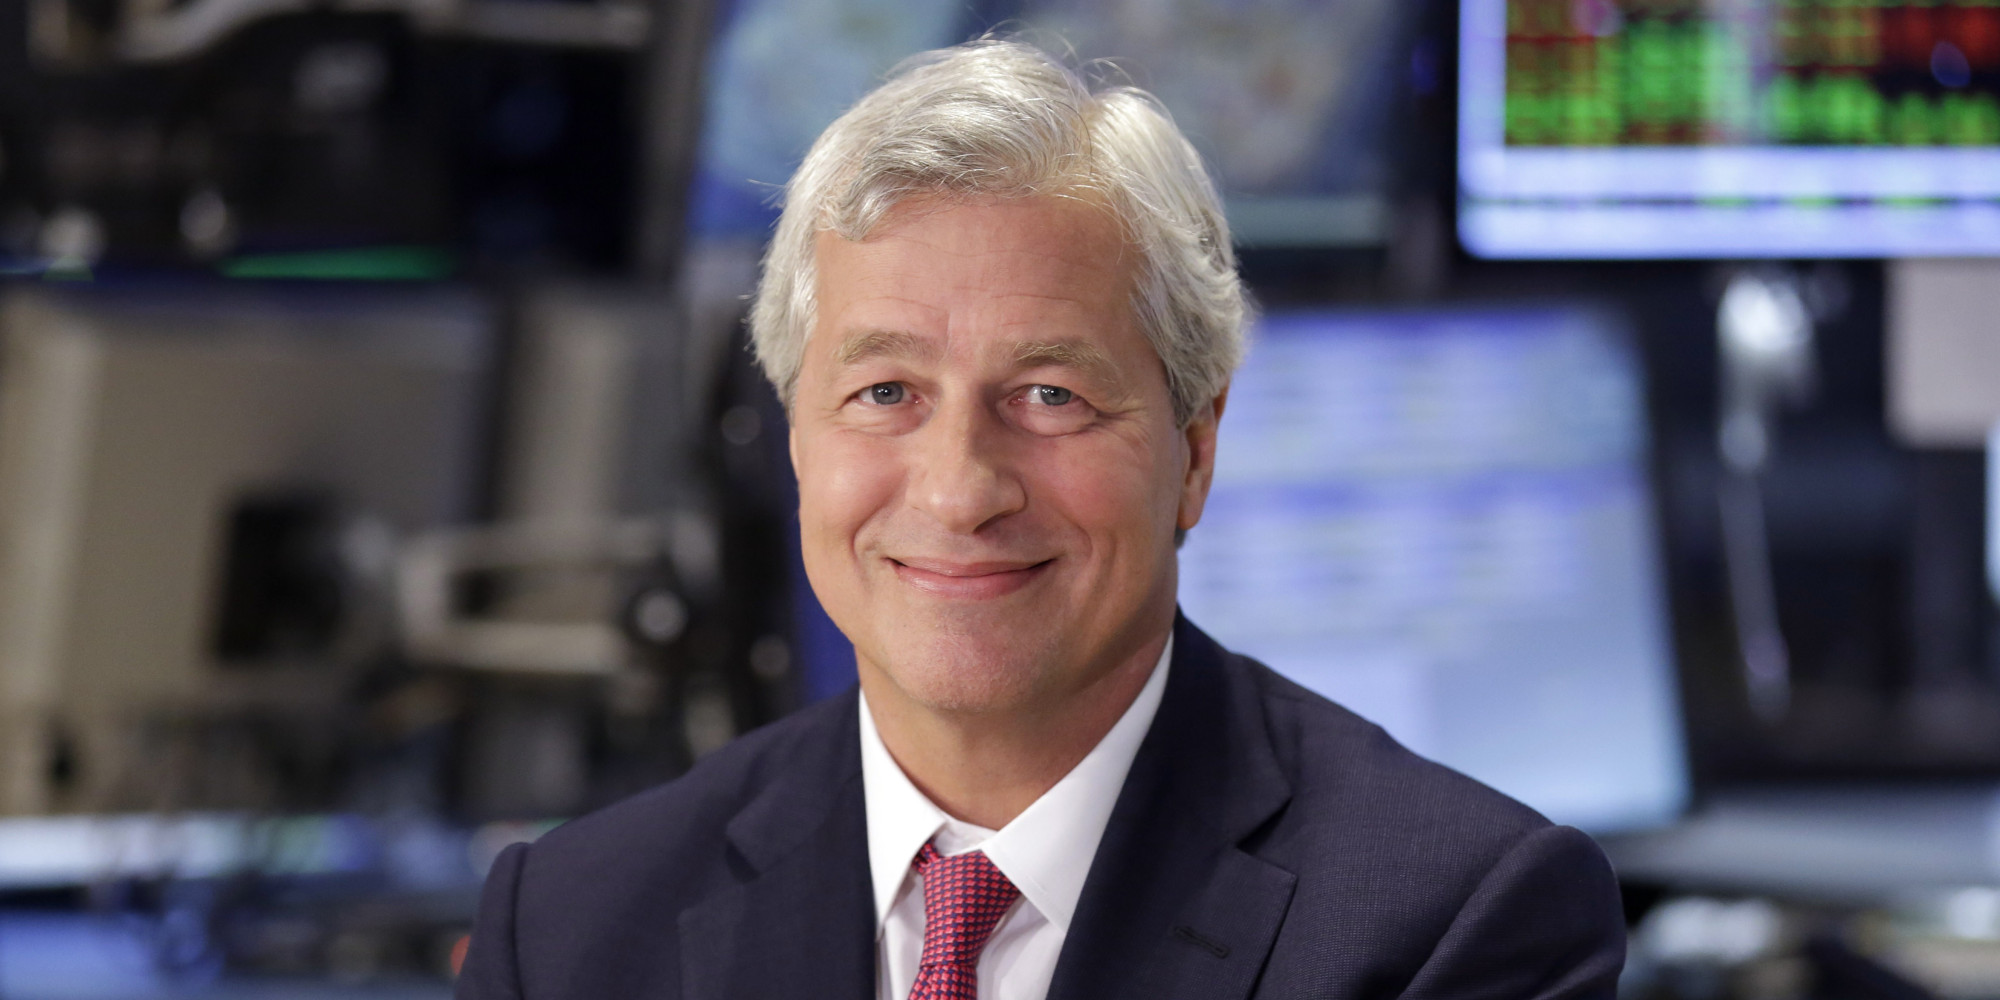 FILE - In this July 12, 2013 file photo, JP Morgan Chase Chairman and CEO Jamie Dimon is interviewed on the floor of the New York Stock Exchange. JPMorgan said Friday, Oct. 25, 2013, that it has agreed to pay $5.1 billion to resolve claims that it misled Fannie Mae and Freddie Mac about risky mortgage securities it sold them before the housing market collapsed. (AP Photo/Richard Drew, File)